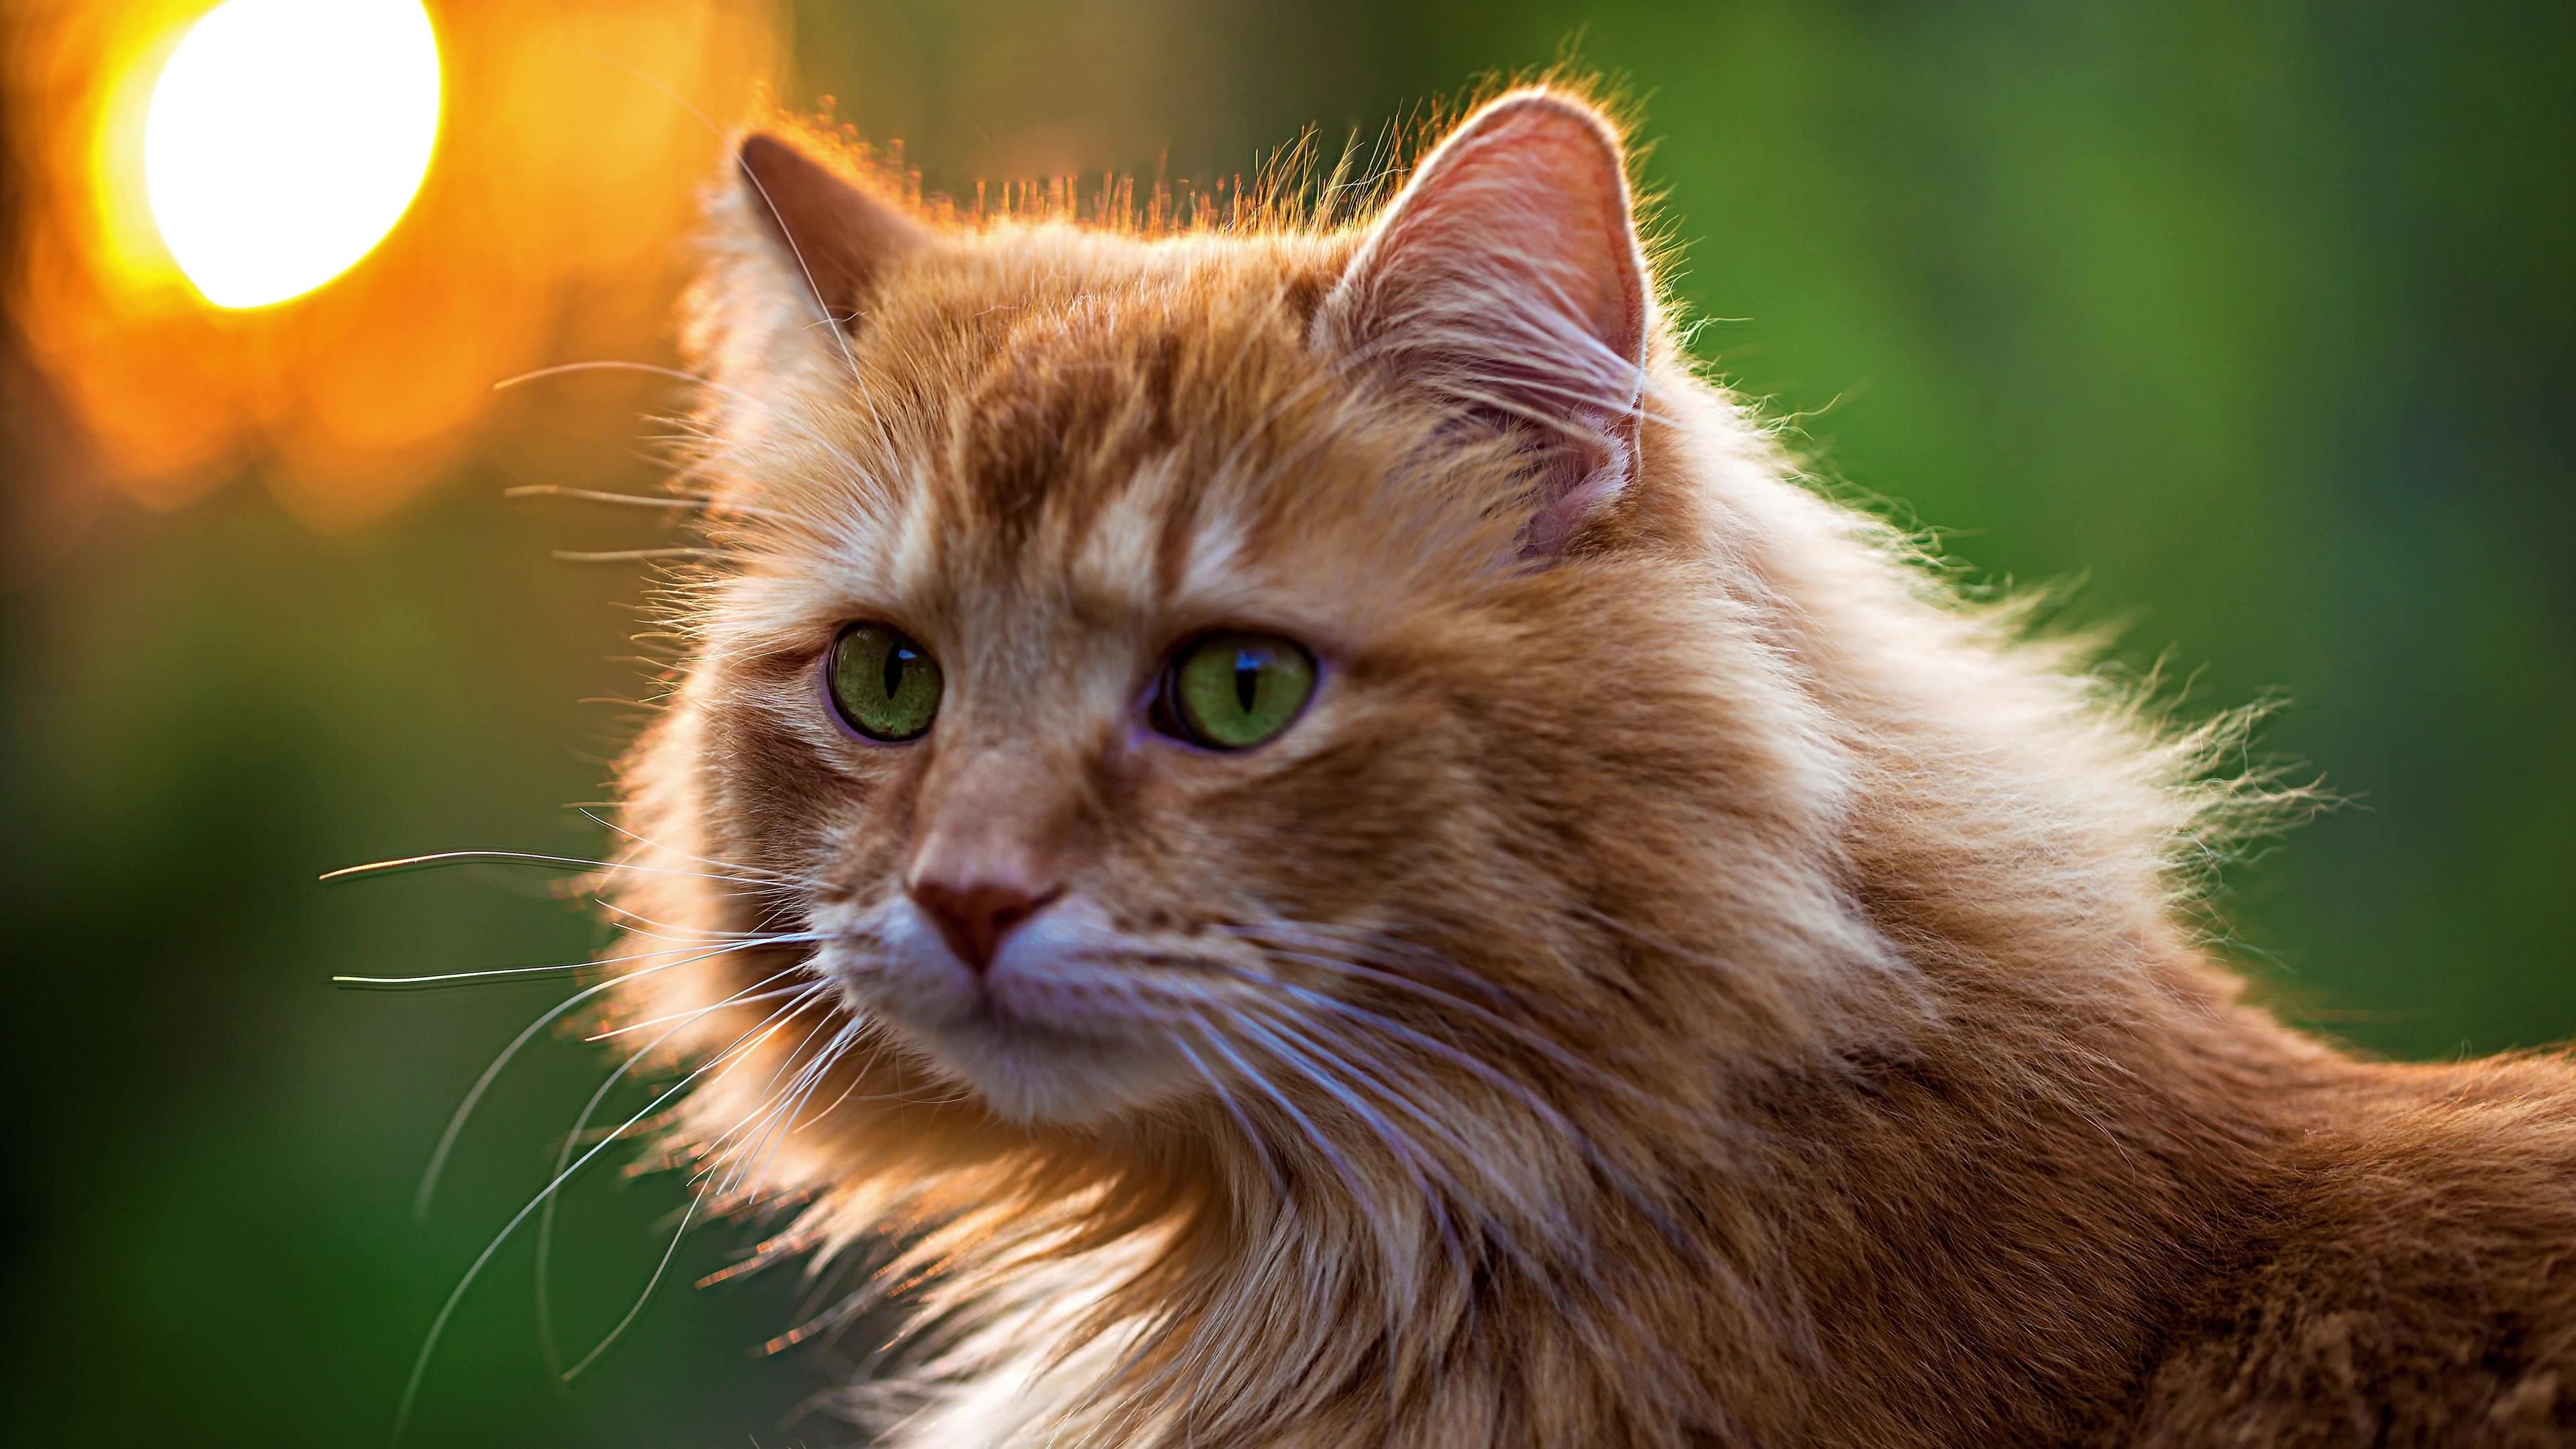 4K Kittens Wallpapers High Quality Download 3840x2160